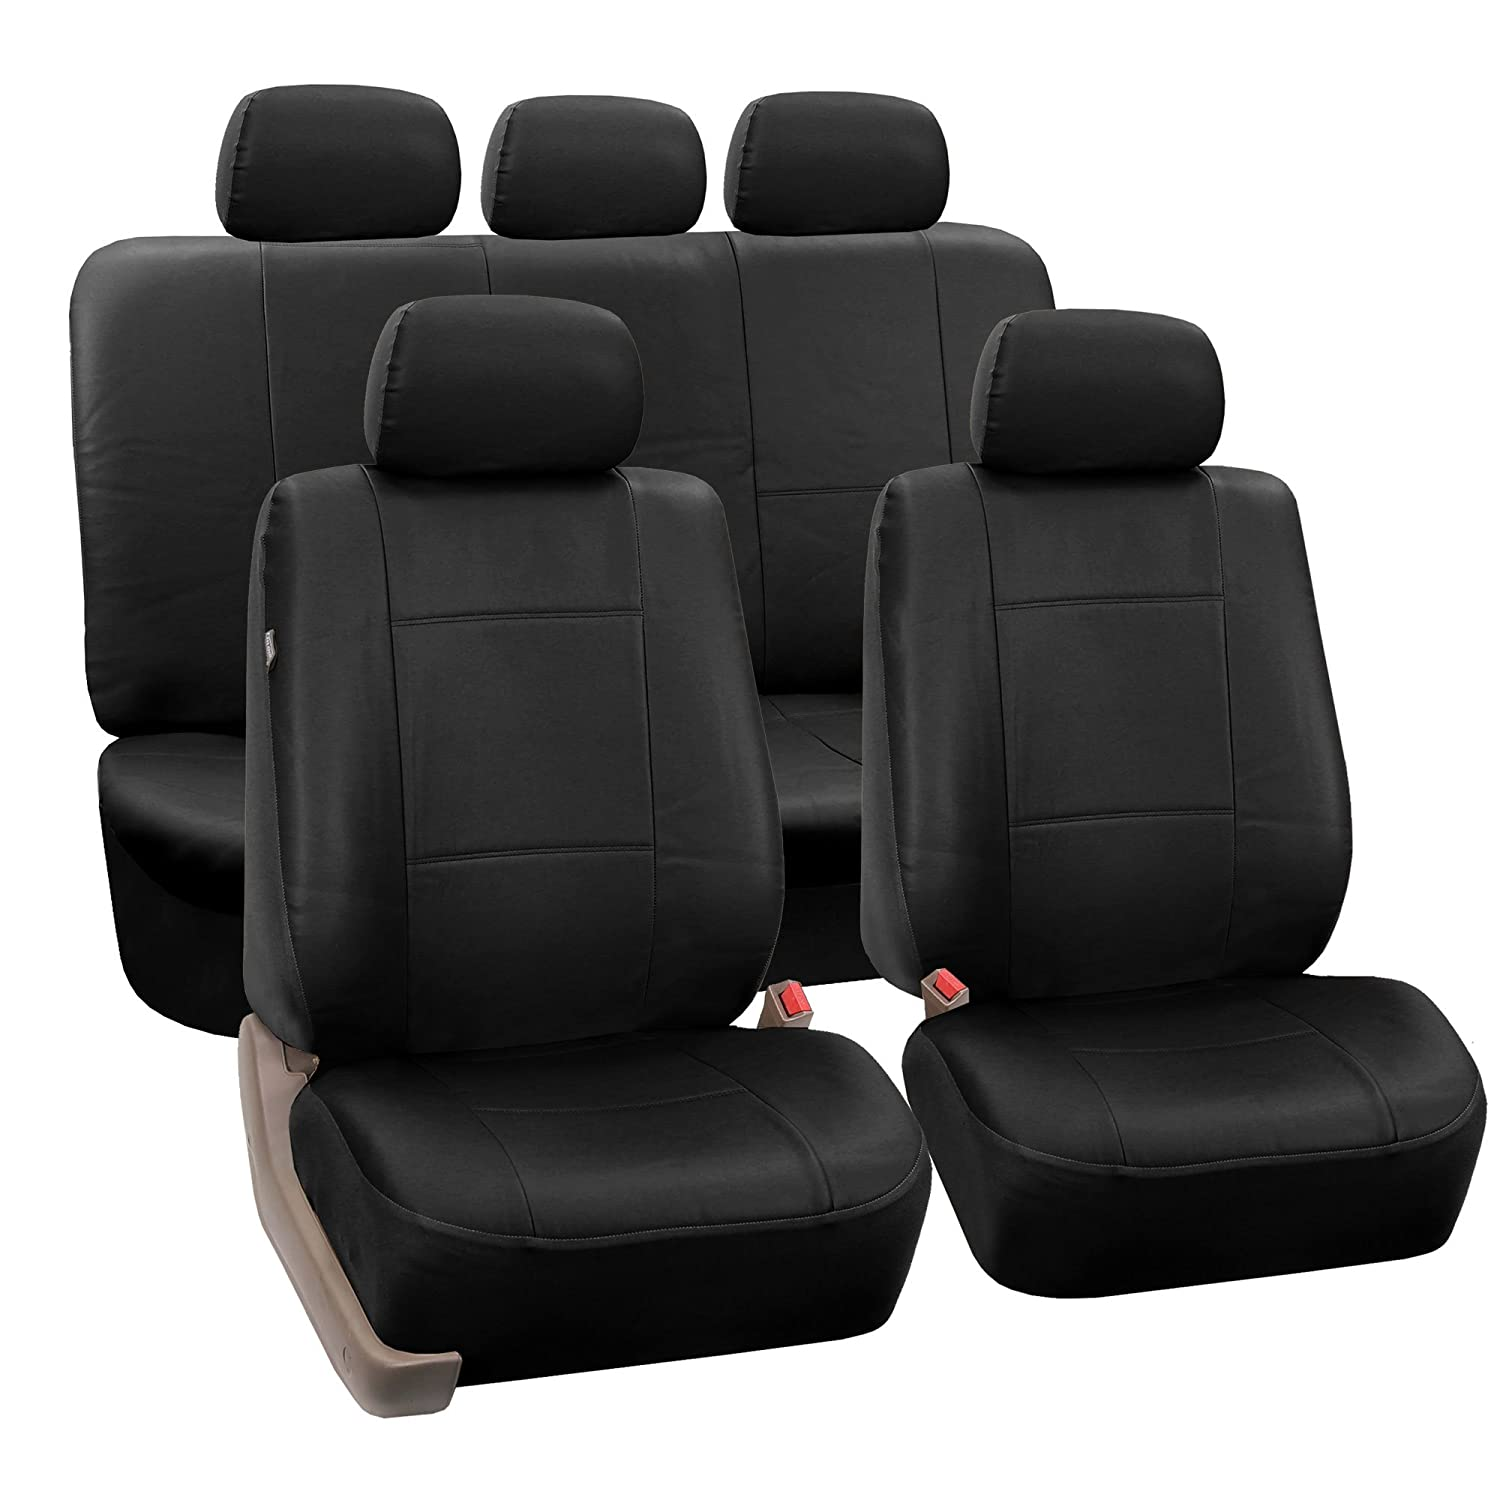 FH-PU002-1115 Classic Exquisite Leather Car Seat Covers, Airbag compatible and Split Bench, Solid Black color FH Group 002-111115